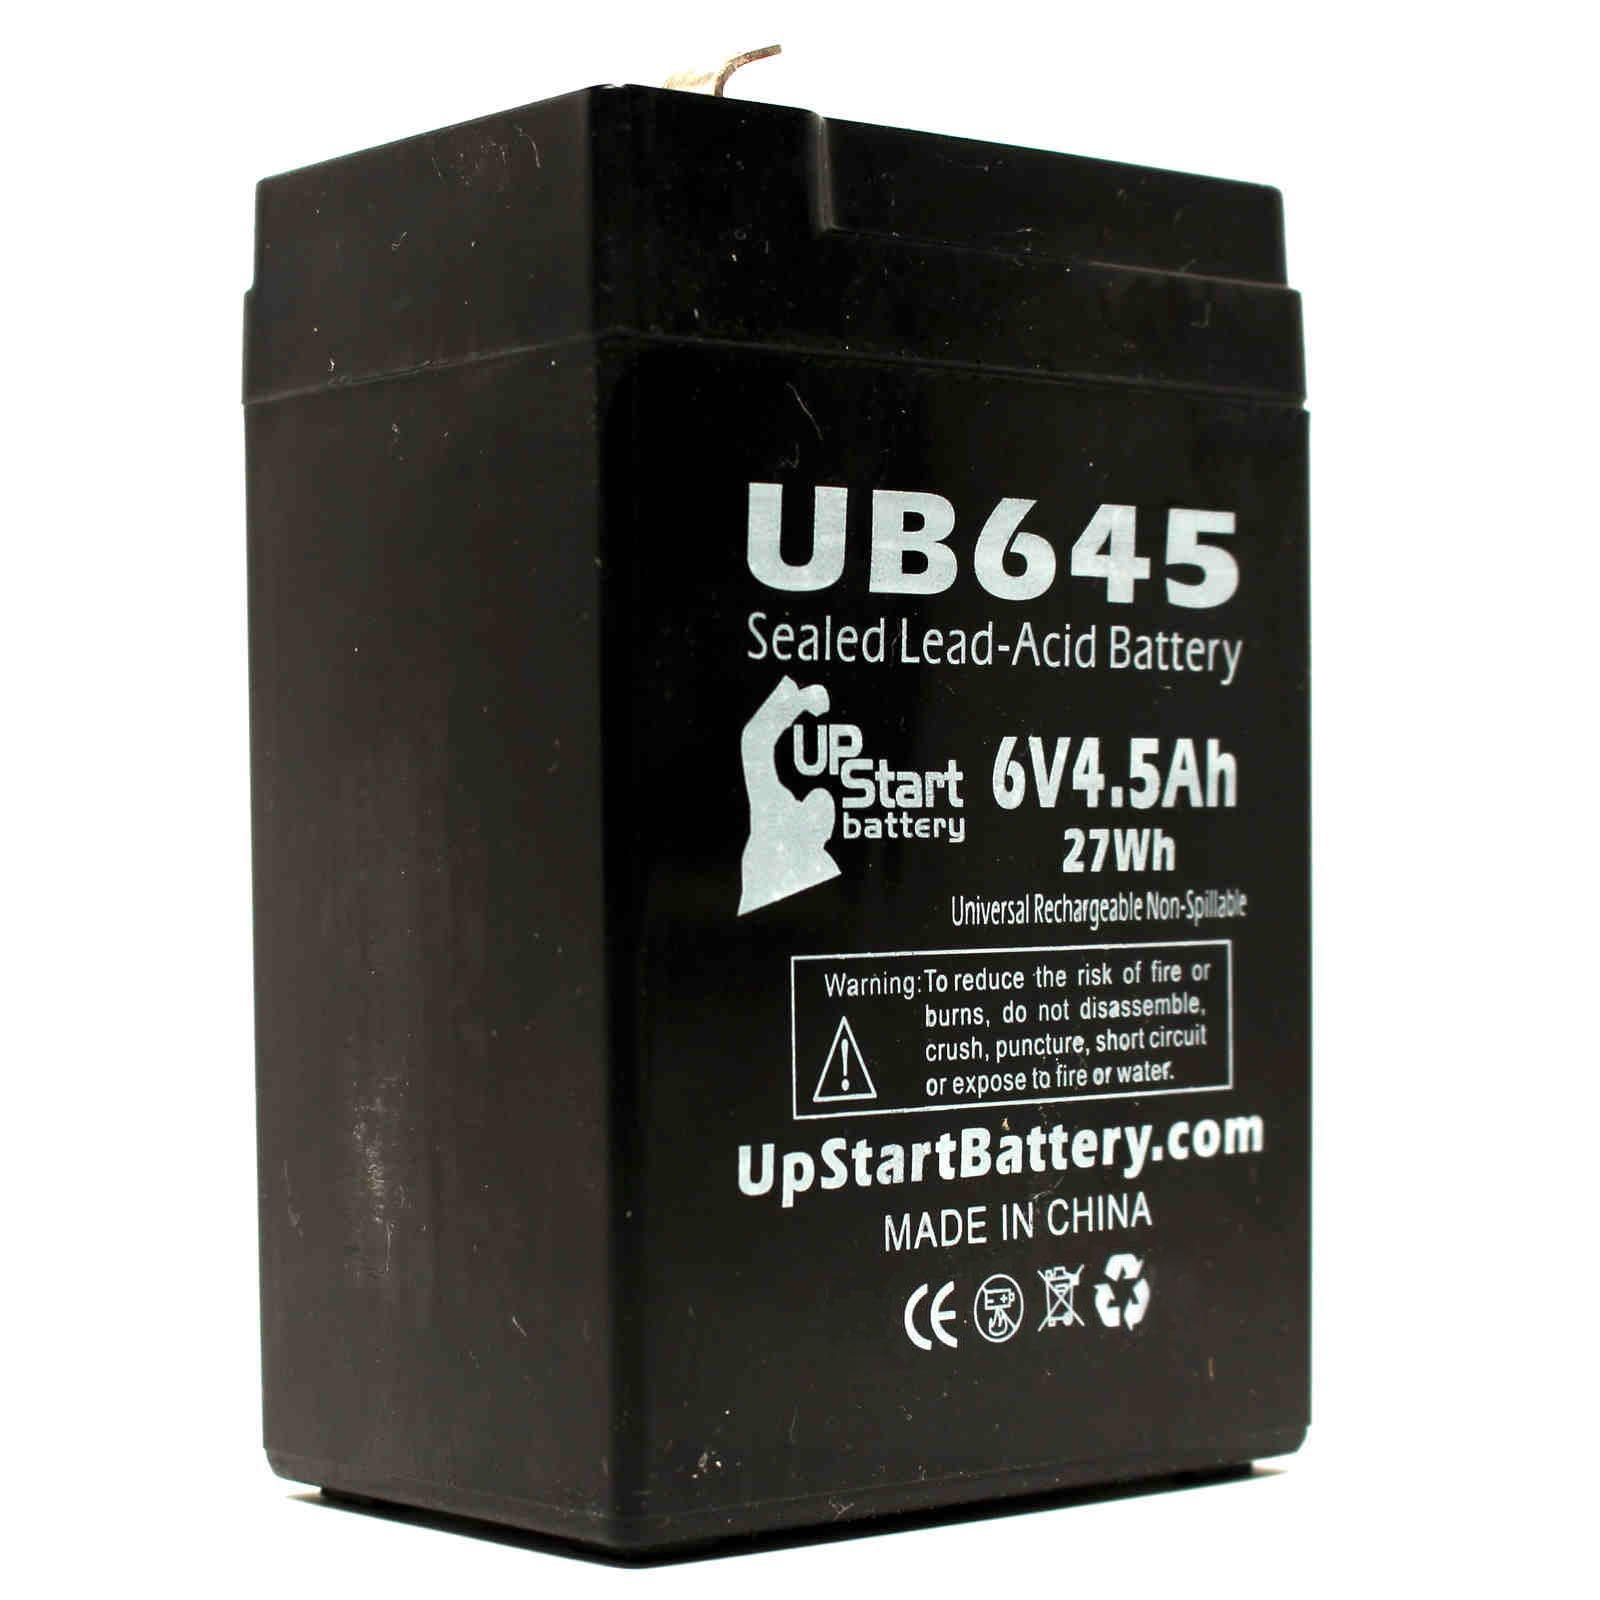 Power Patrol SLA0905 Battery Replacement - UB645 Universal Sealed Lead Acid Battery (6V, 4.5Ah, 4500mAh, F1 Terminal, AGM, SLA) - Includes TWO F1 to F2 Terminal Adapters - image 2 de 4